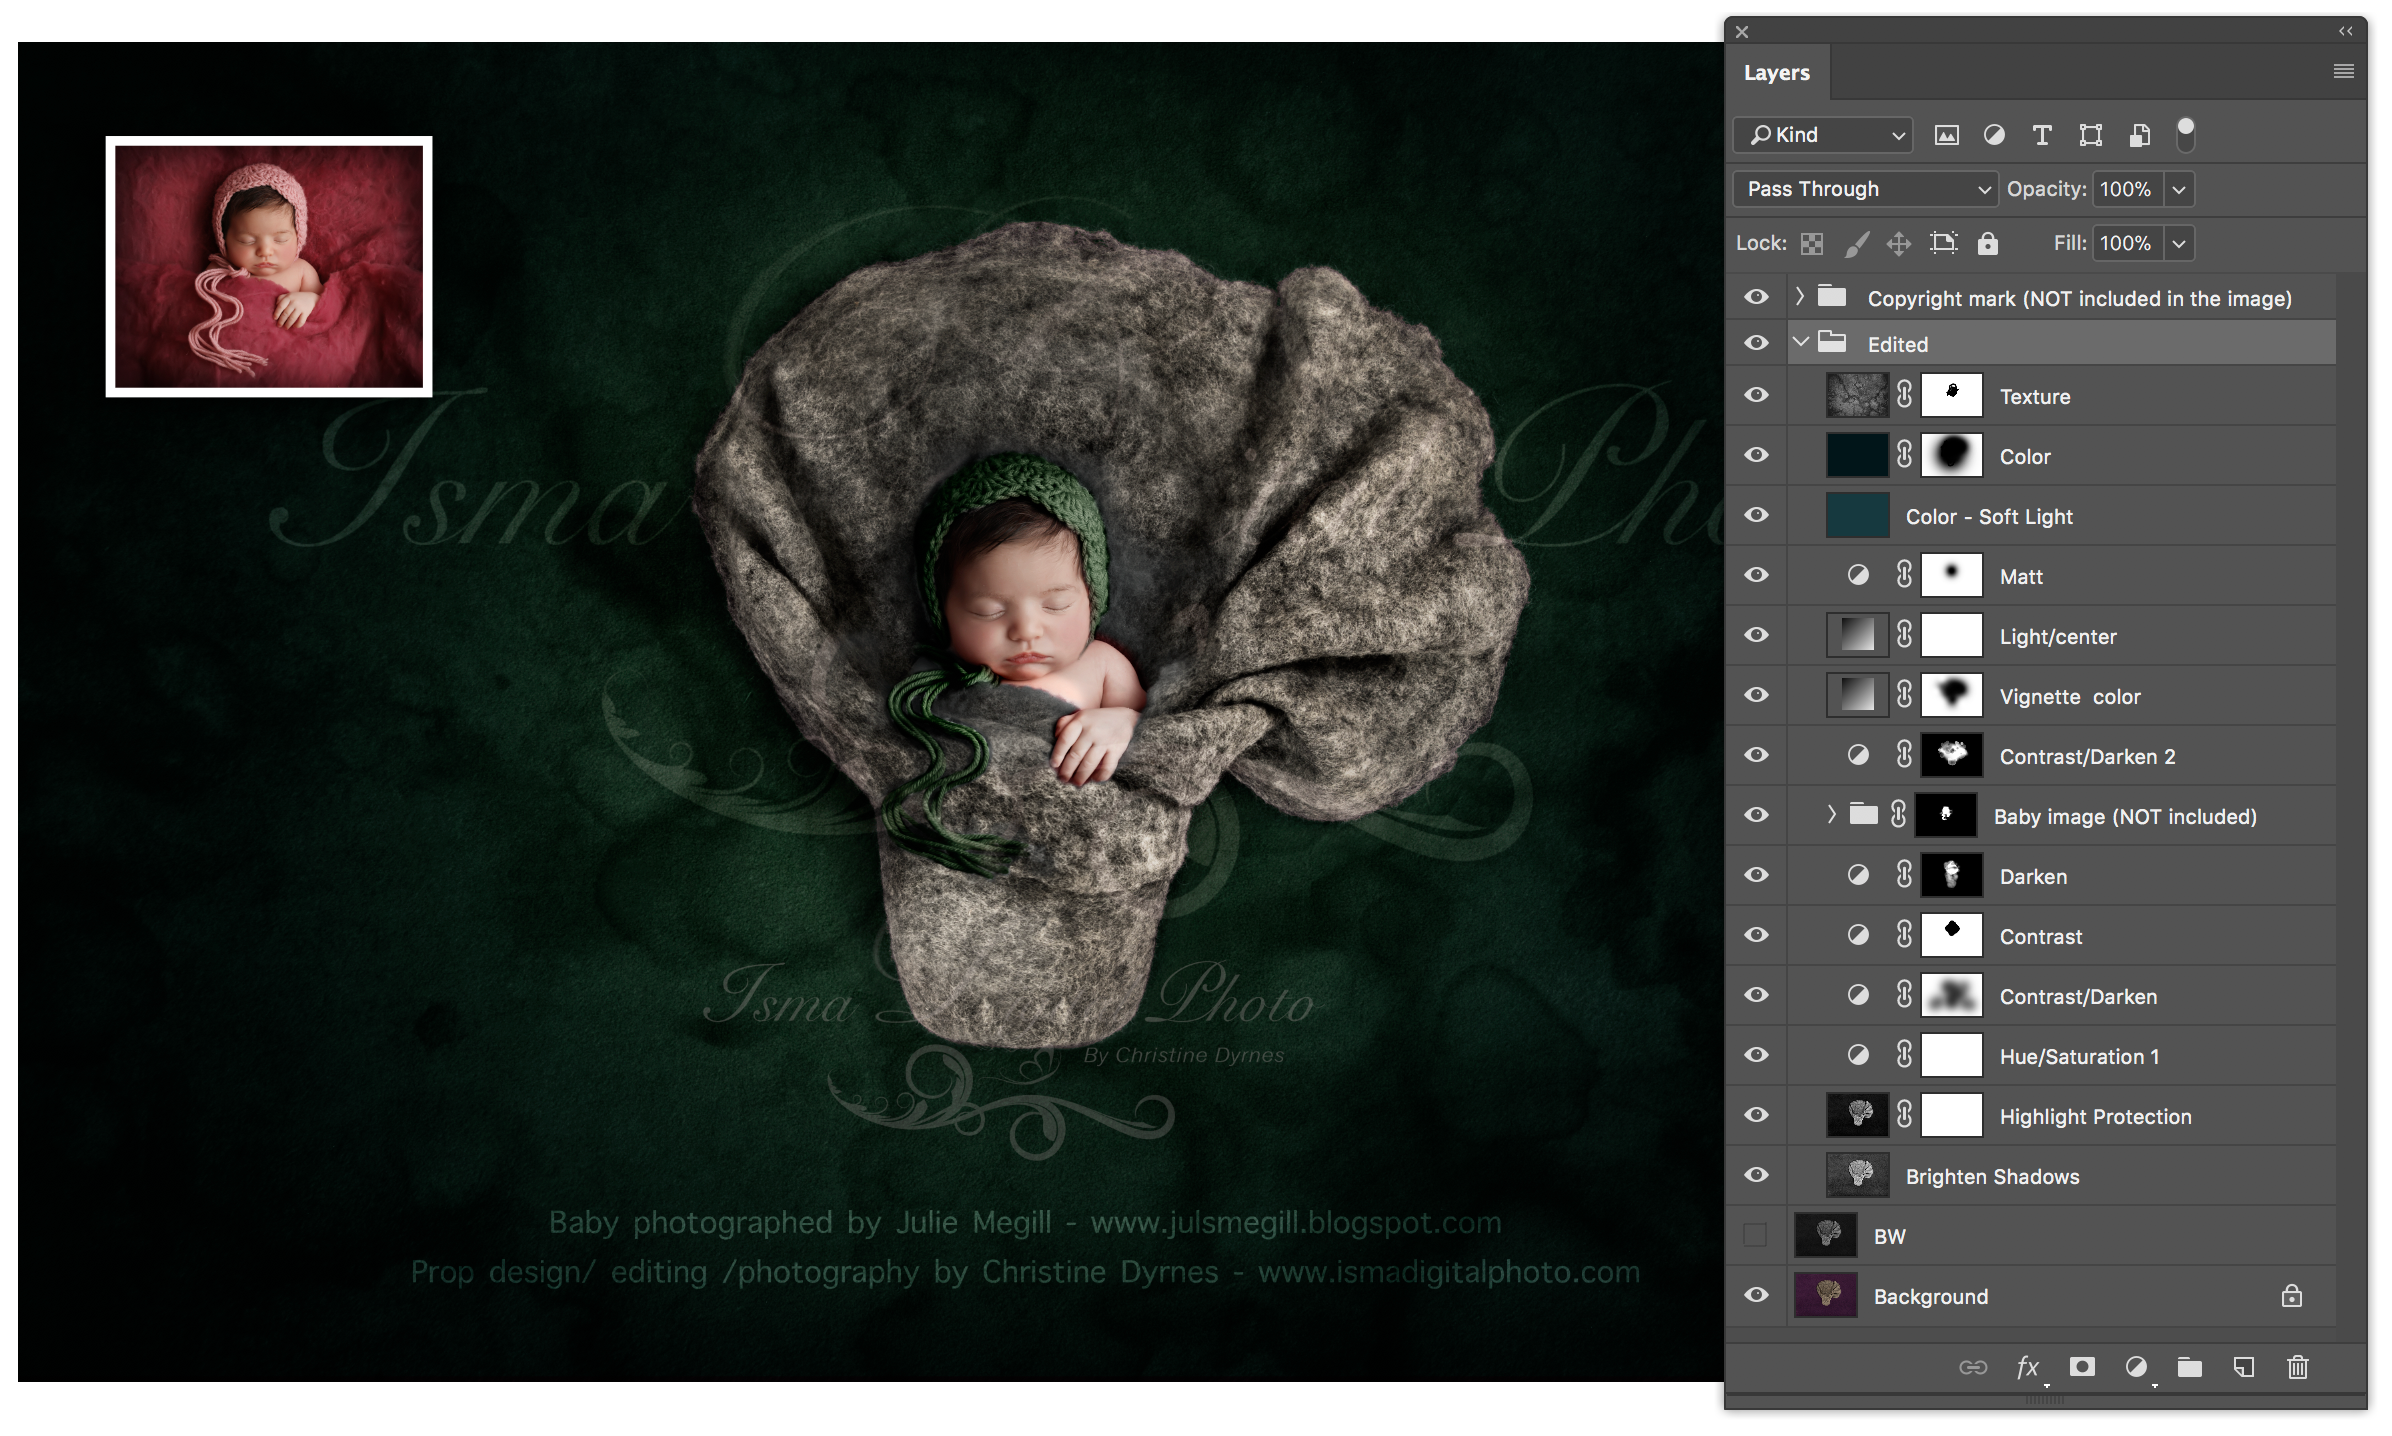 Newborn felted wool bed 1 Digital Backdrop /Props for Newborn /baby photography - High resolution digital backdrop /background - One JPG and one PSD file with layers